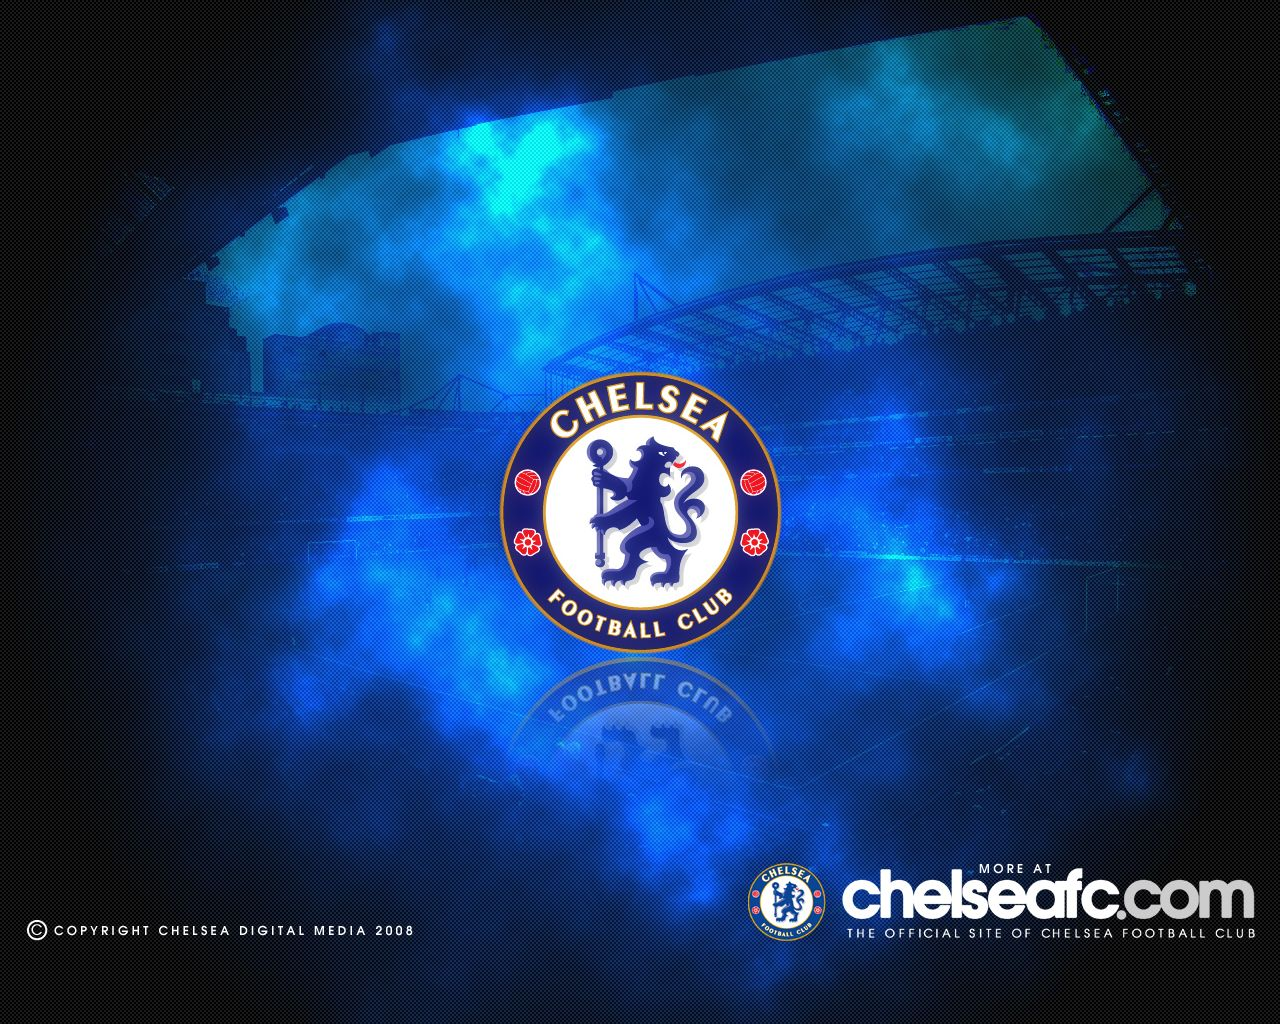 chelsea fc wallpapers for pc - photo #5